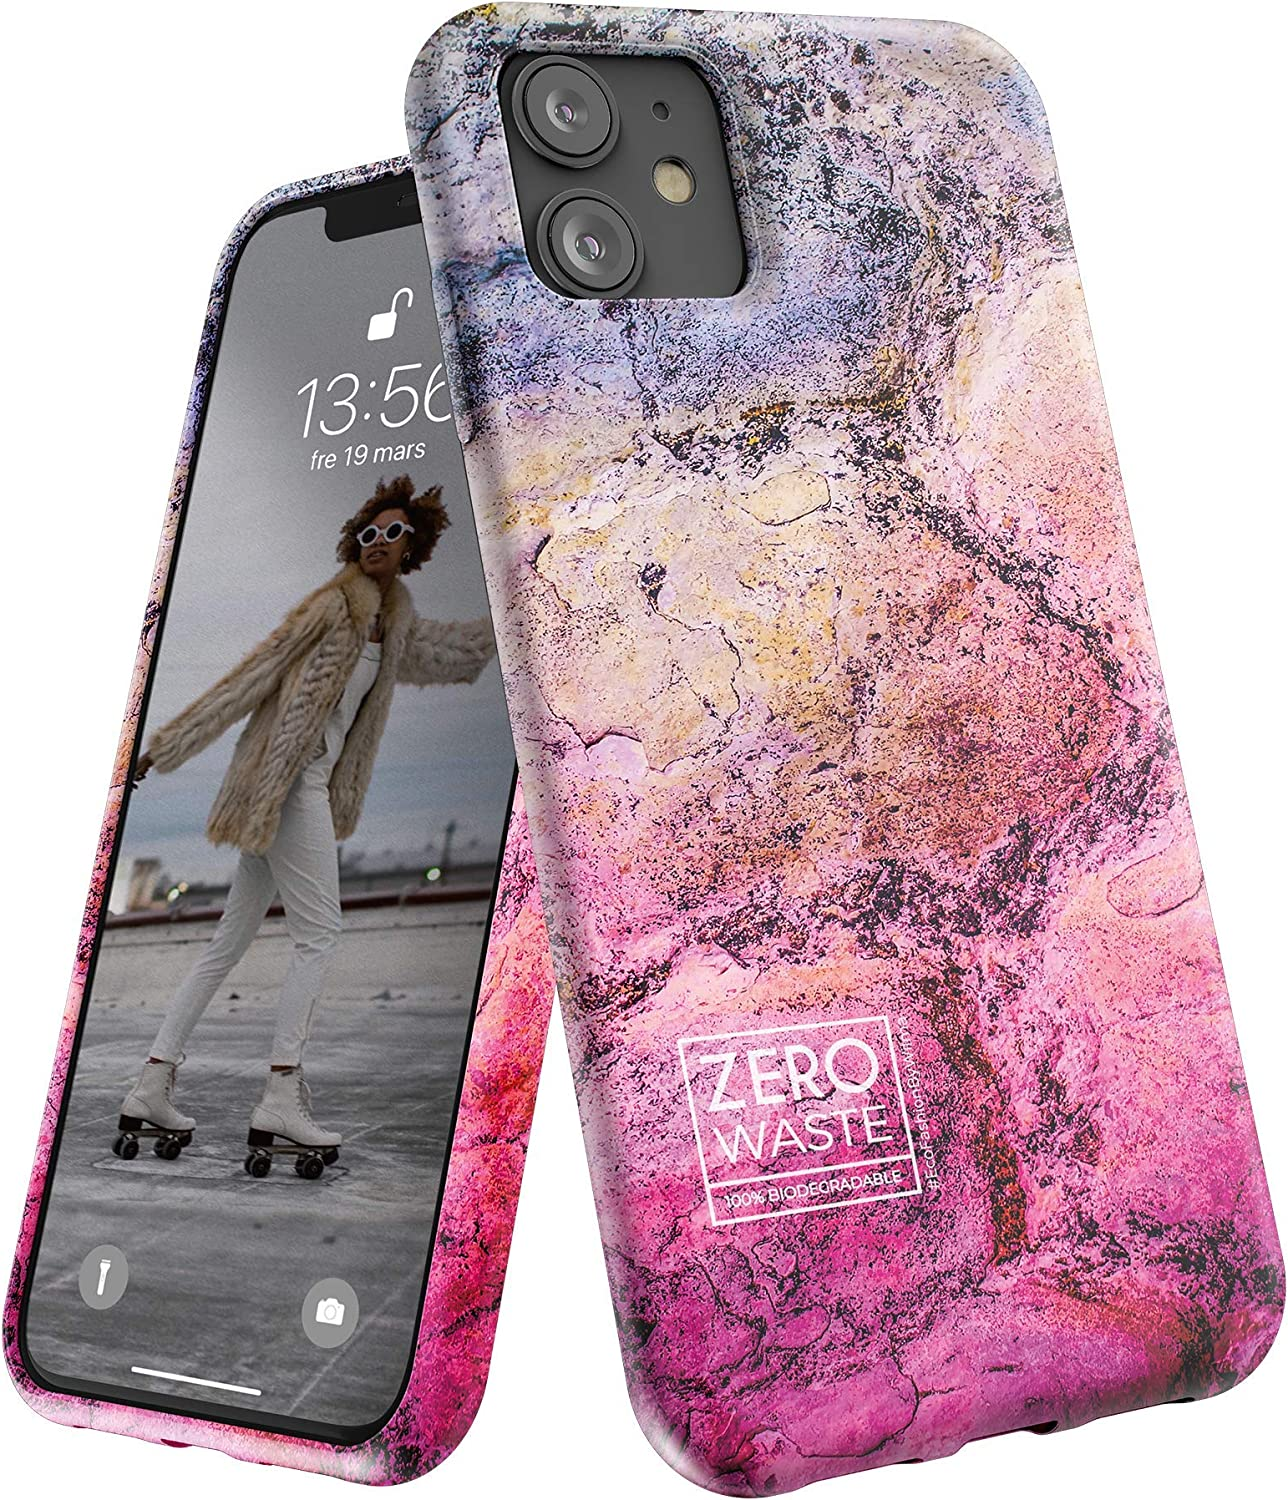 Wilma Biodegradable Compatible with iPhone 11 Case, Zero Waste, Shockproof Protective Phone Cover, Eco Friendly, Stop Plastic Pollution, Plastic Free Case, Landscape